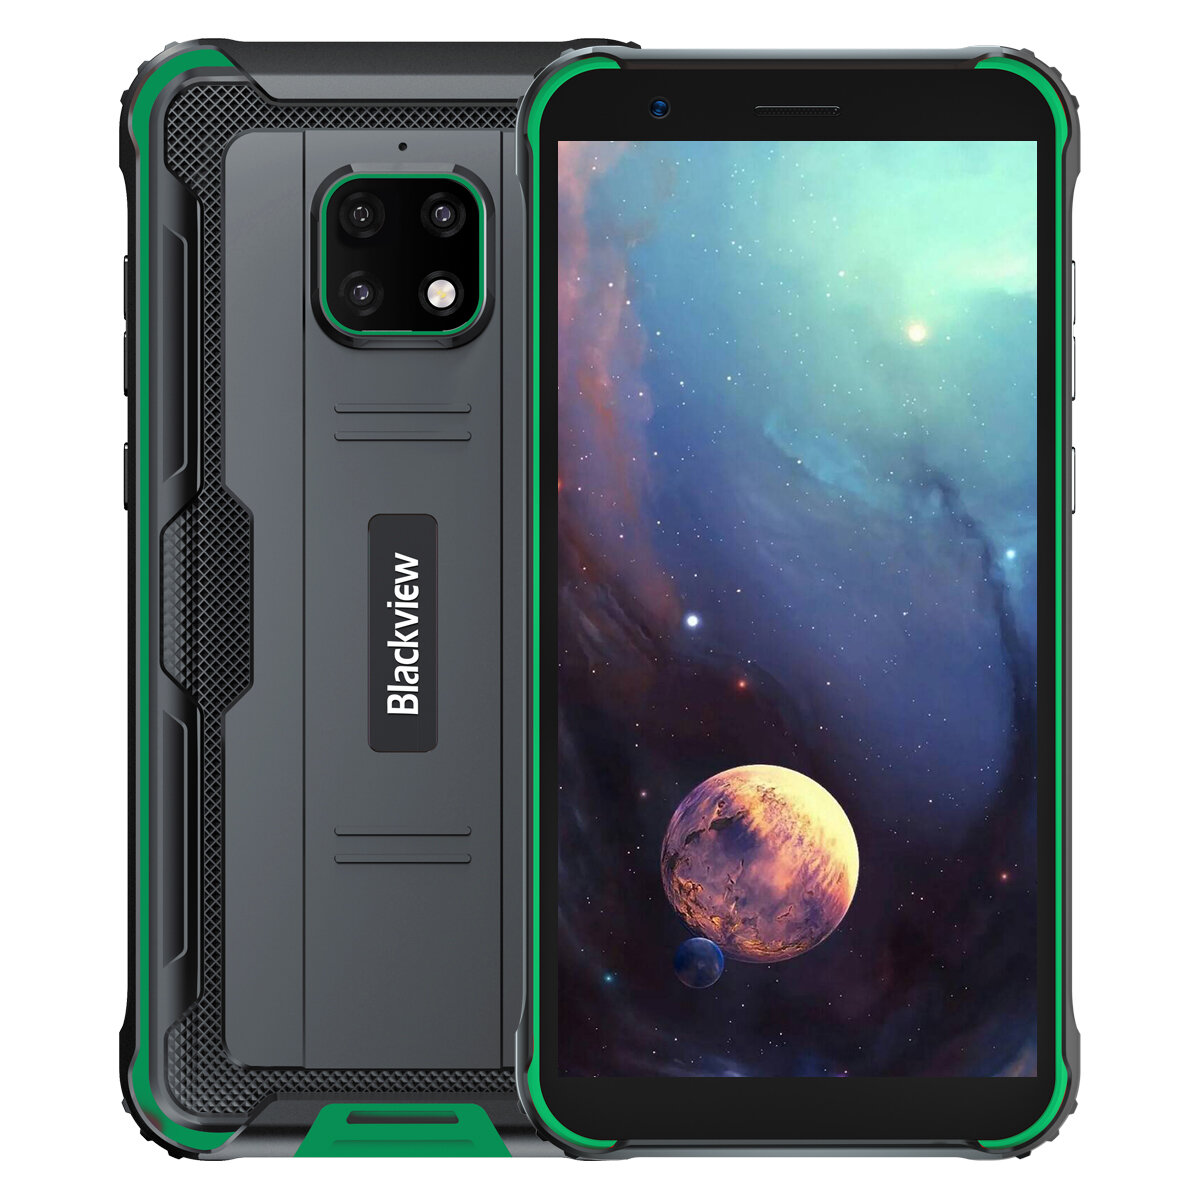 Blackview BV4900 IP68/IP69K 5.7 inch NFC Android 10 5580mAh 3GB 32GB Helio A22 Quad Core 4G Smartphone - Green